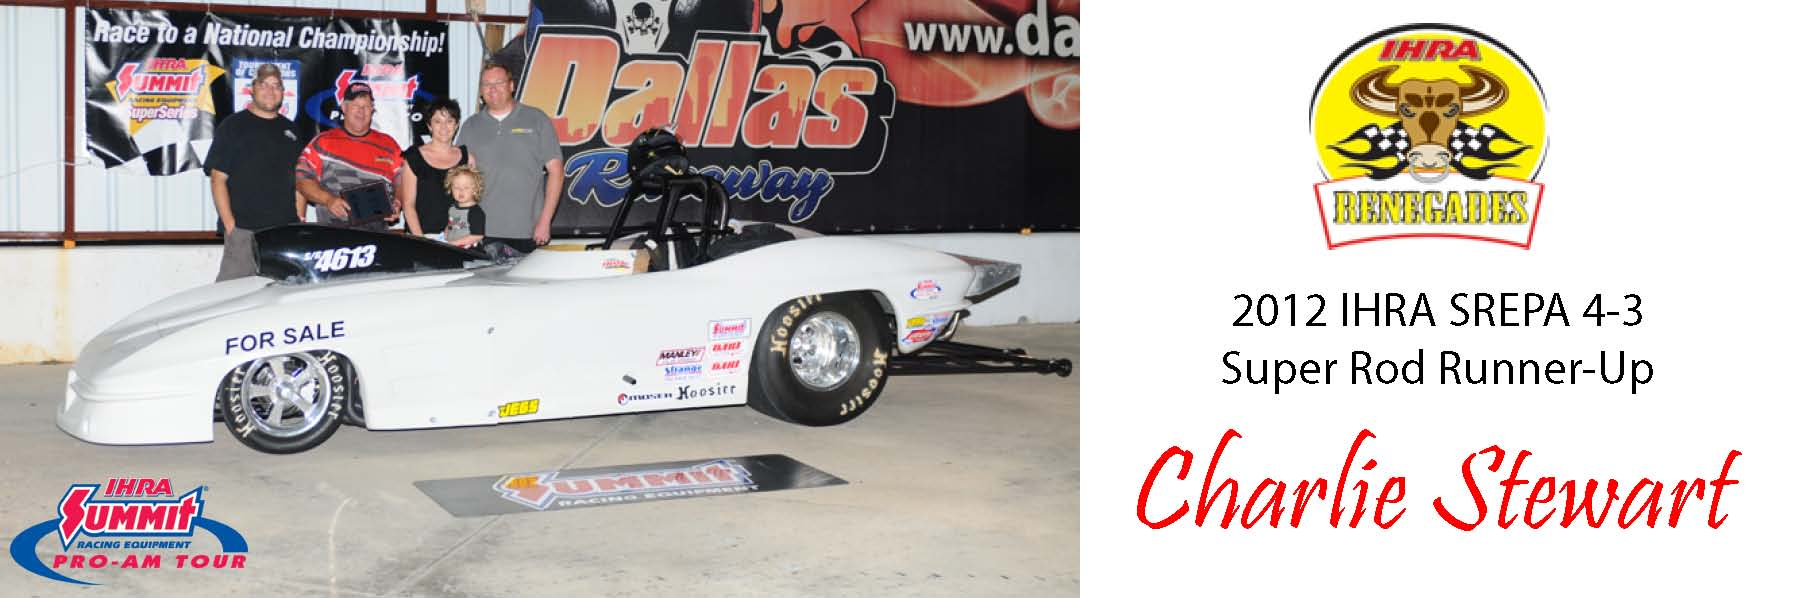 Stewart Races to Runner-Up Finish at IHRA Pro-Am in Crandall, TX